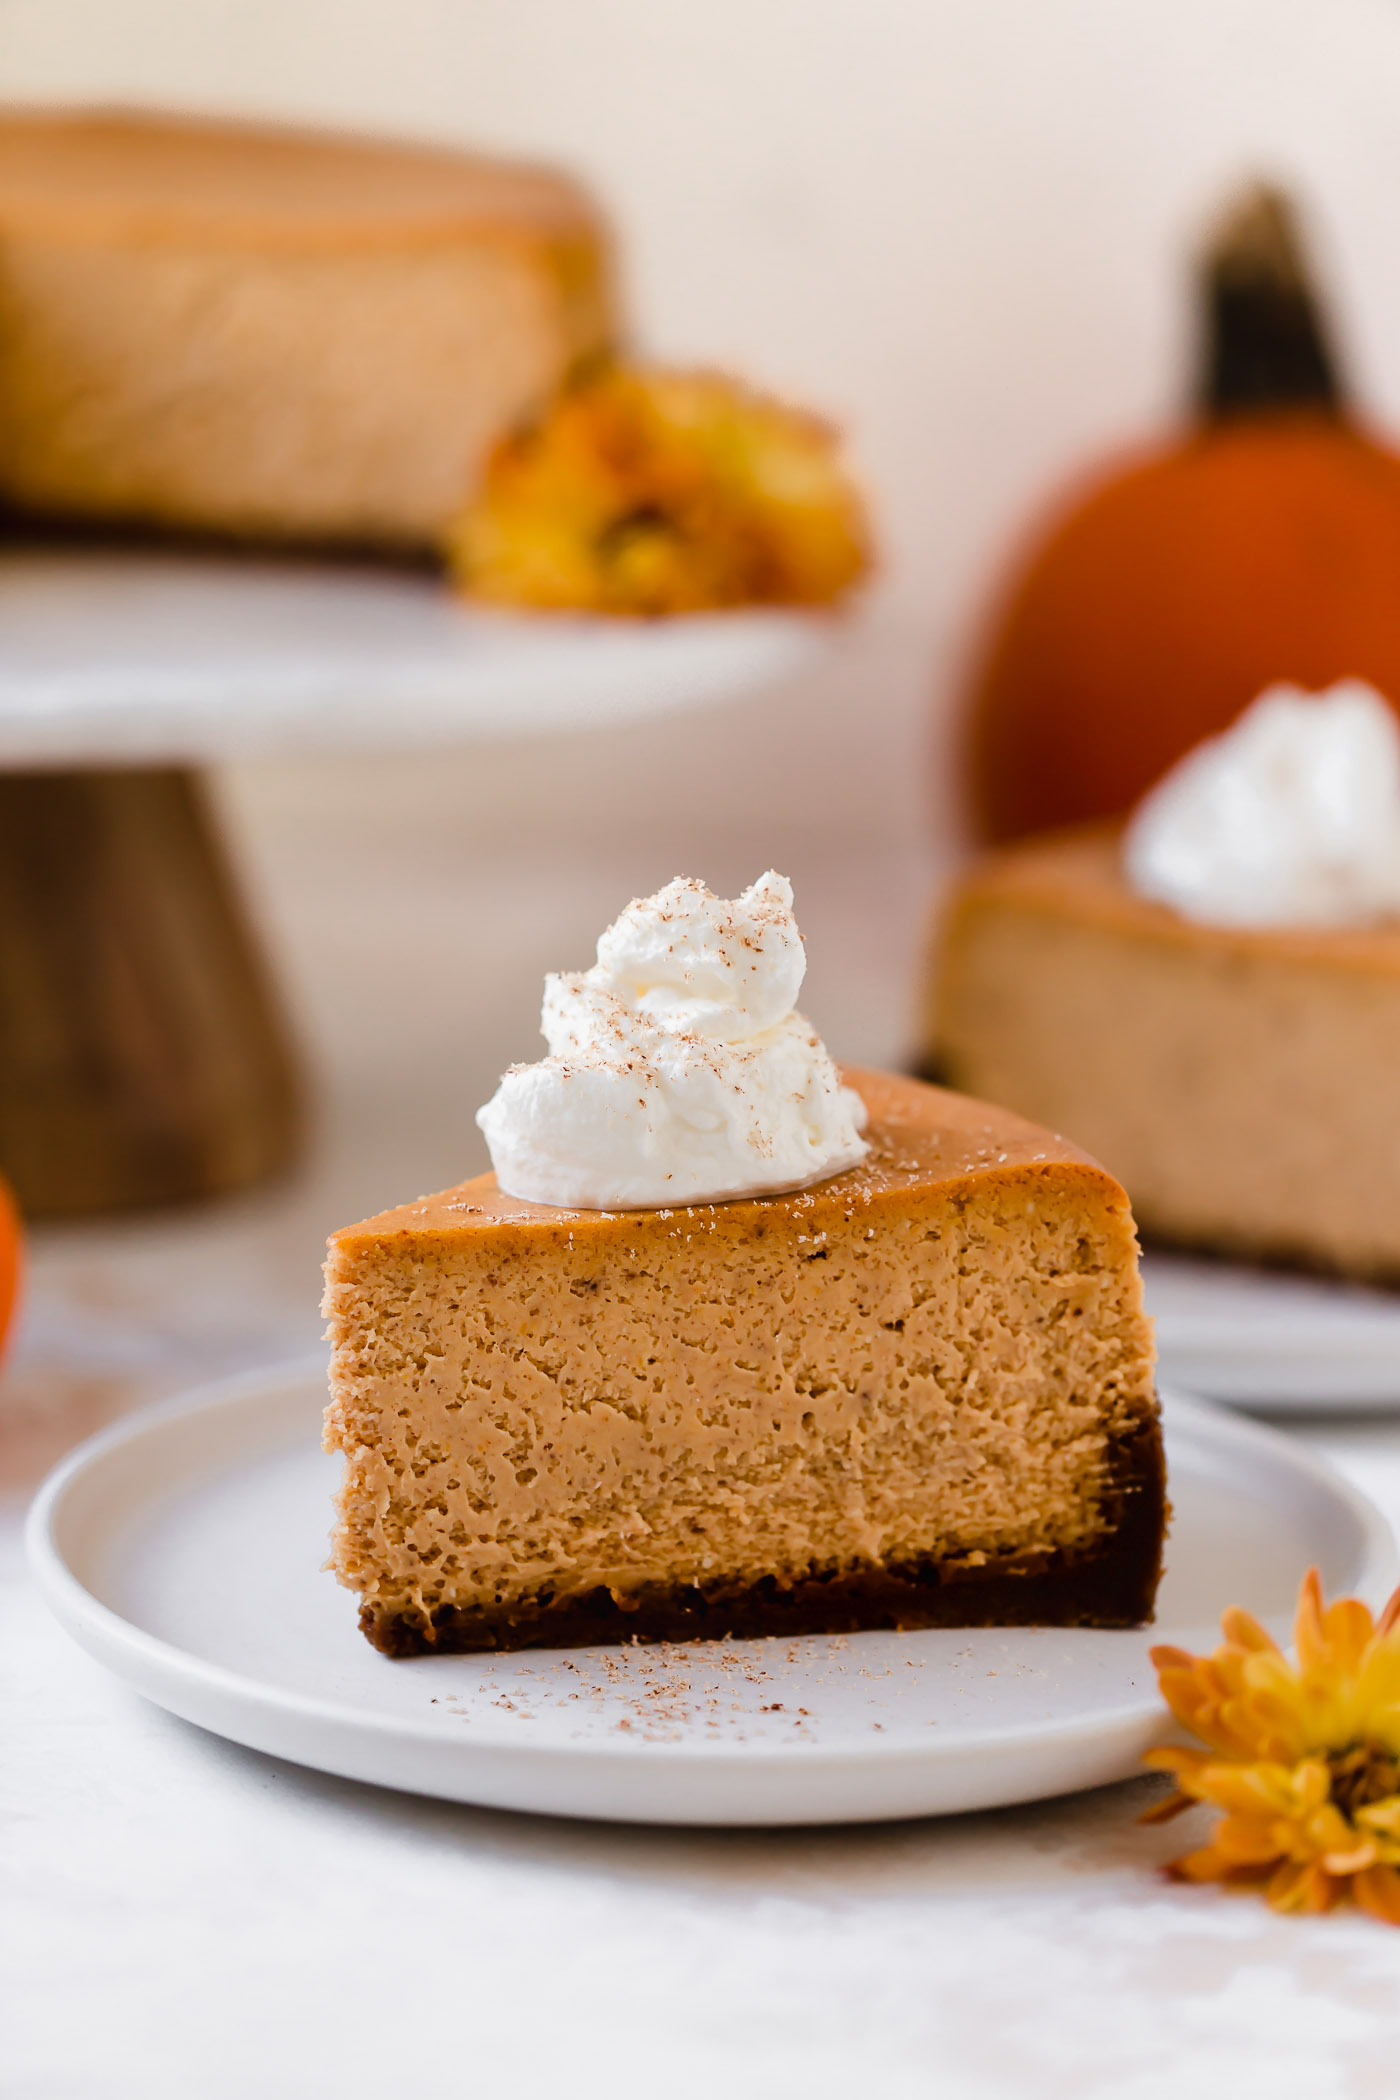 the perfect pumpkin cheesecake recipe! this pumpkin cheesecake has the perfect light & creamy texture, it's filled with pumpkin & pumpkin spices, & served on a super gingery gingersnap crust. the ultimate pumpkin dessert to serve at thanksgiving or friendsgiving dinner this year! #playswellwithbutter #pumpkincheesecake #pumpkincheesecakerecipe #bestpumpkincheesecake #pumpkincheesecakewithgingersnapcrust #pumpkindesserts #bestpumpkindesserts #thansksgivingdessertrecipes #friendsgivingdessertrecipes